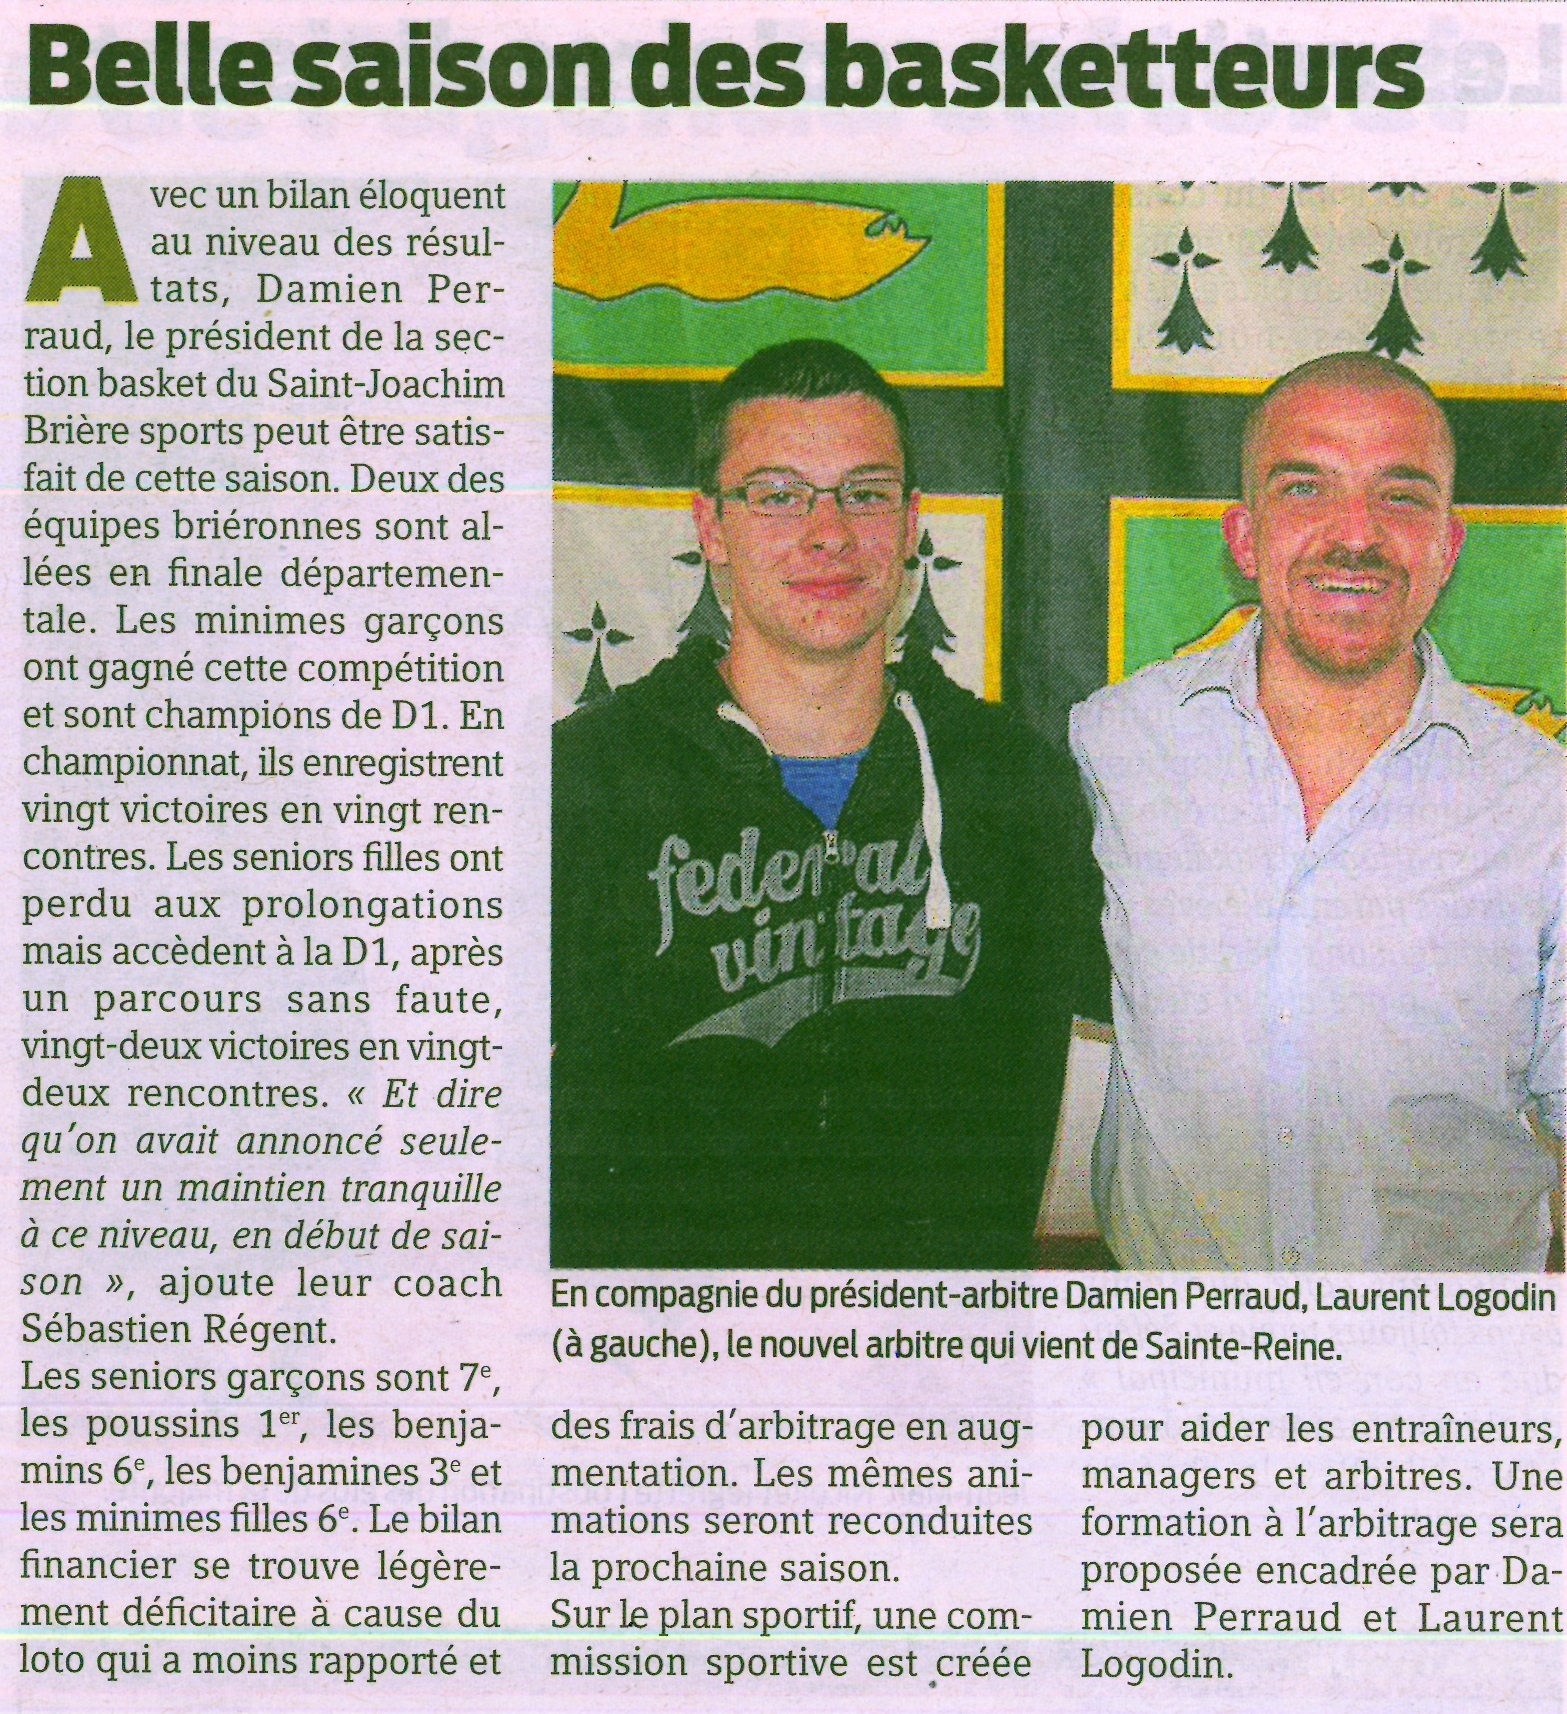 belle saison des basketeurs